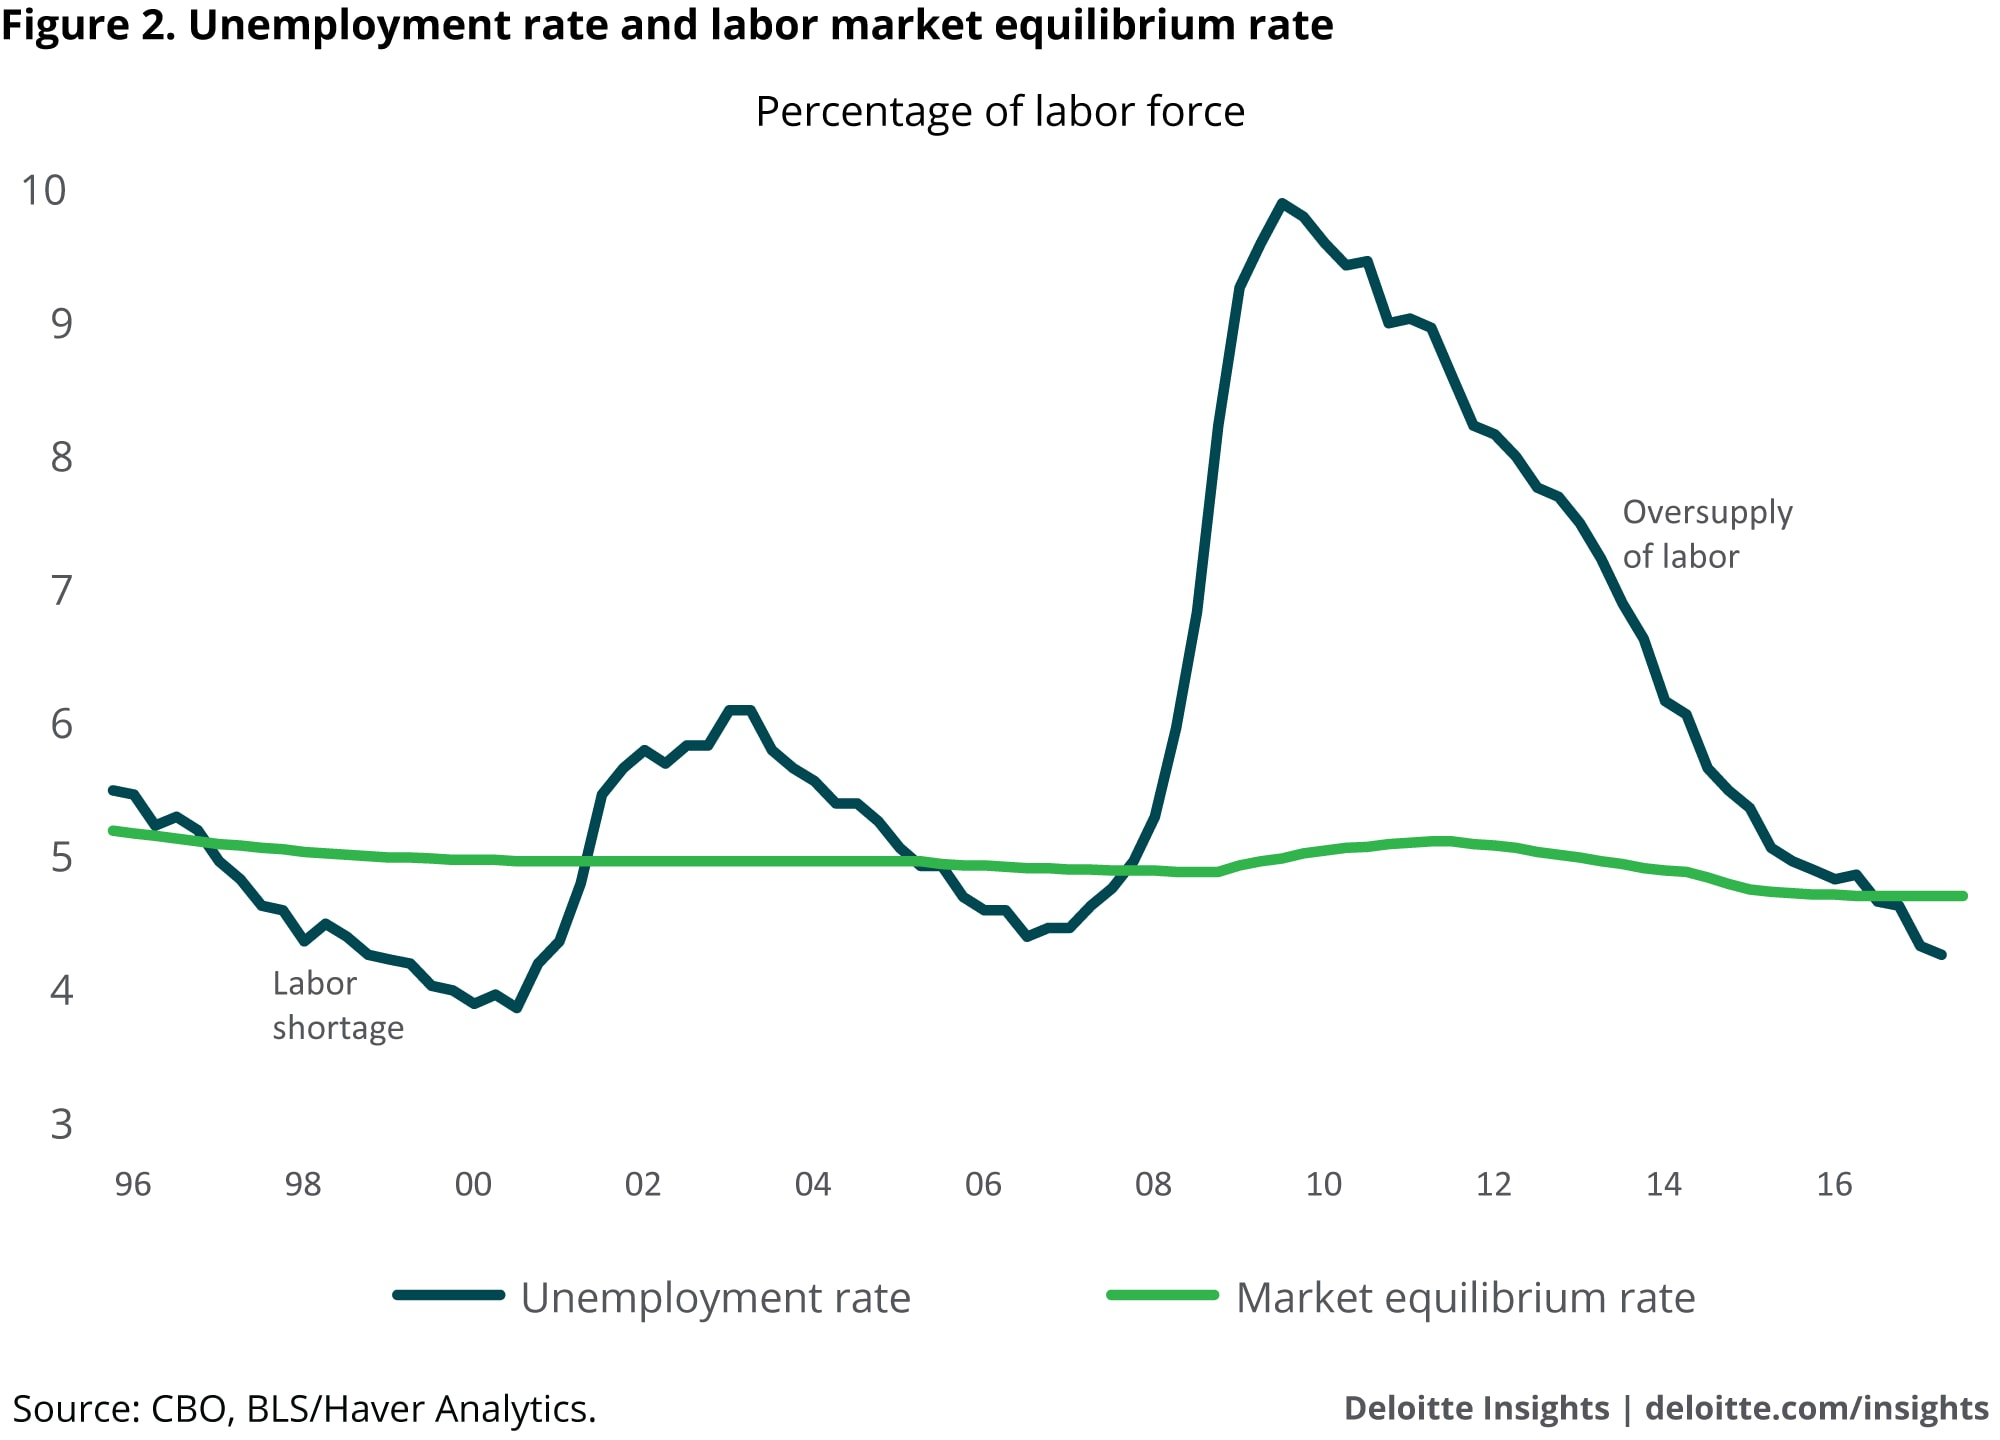 Unemployment rate and labor market equilibrium rate